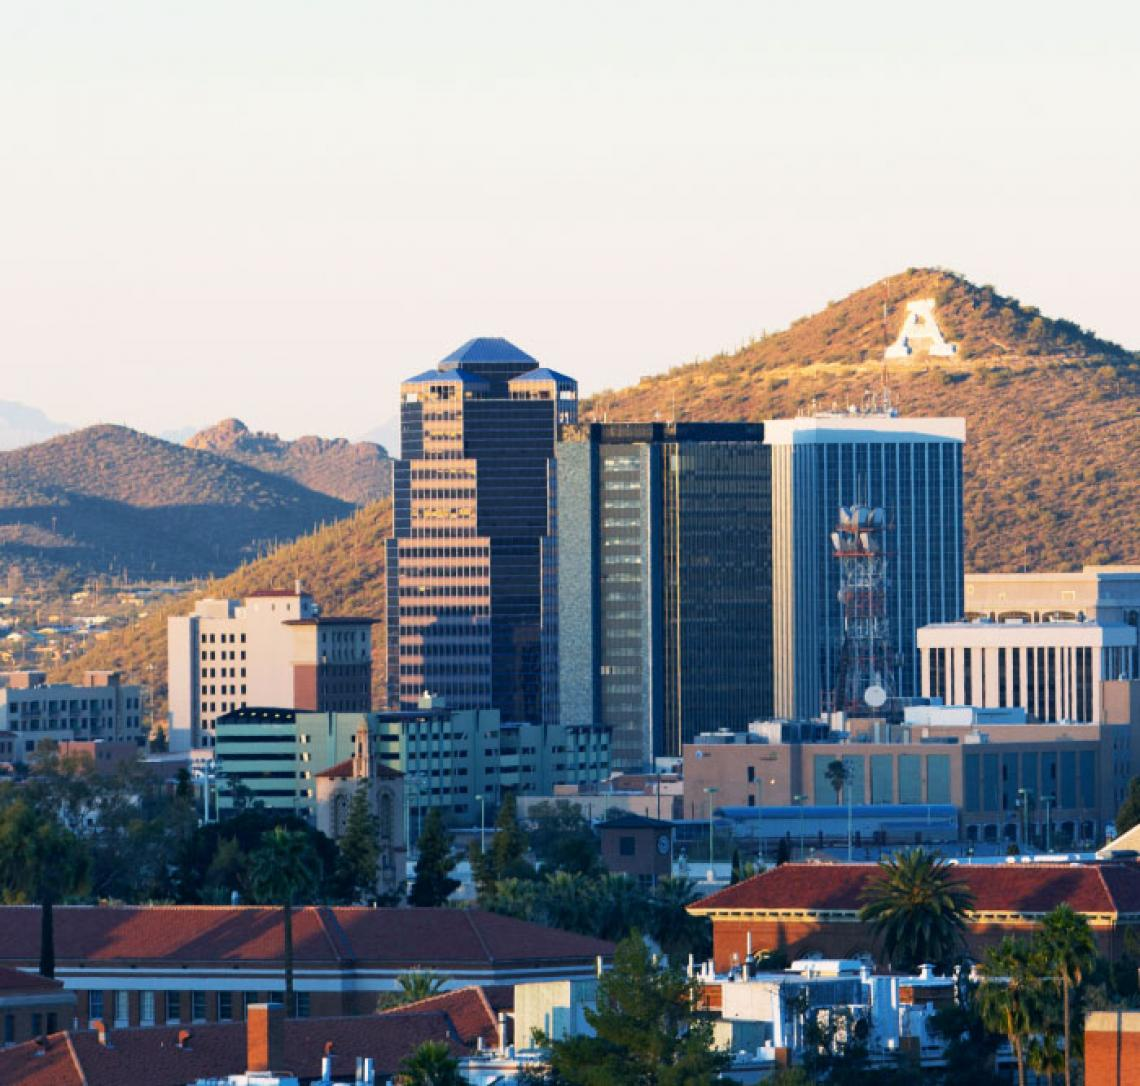 A photo of the City of Tucson skyline as seen from a distance with A Mountain in the background